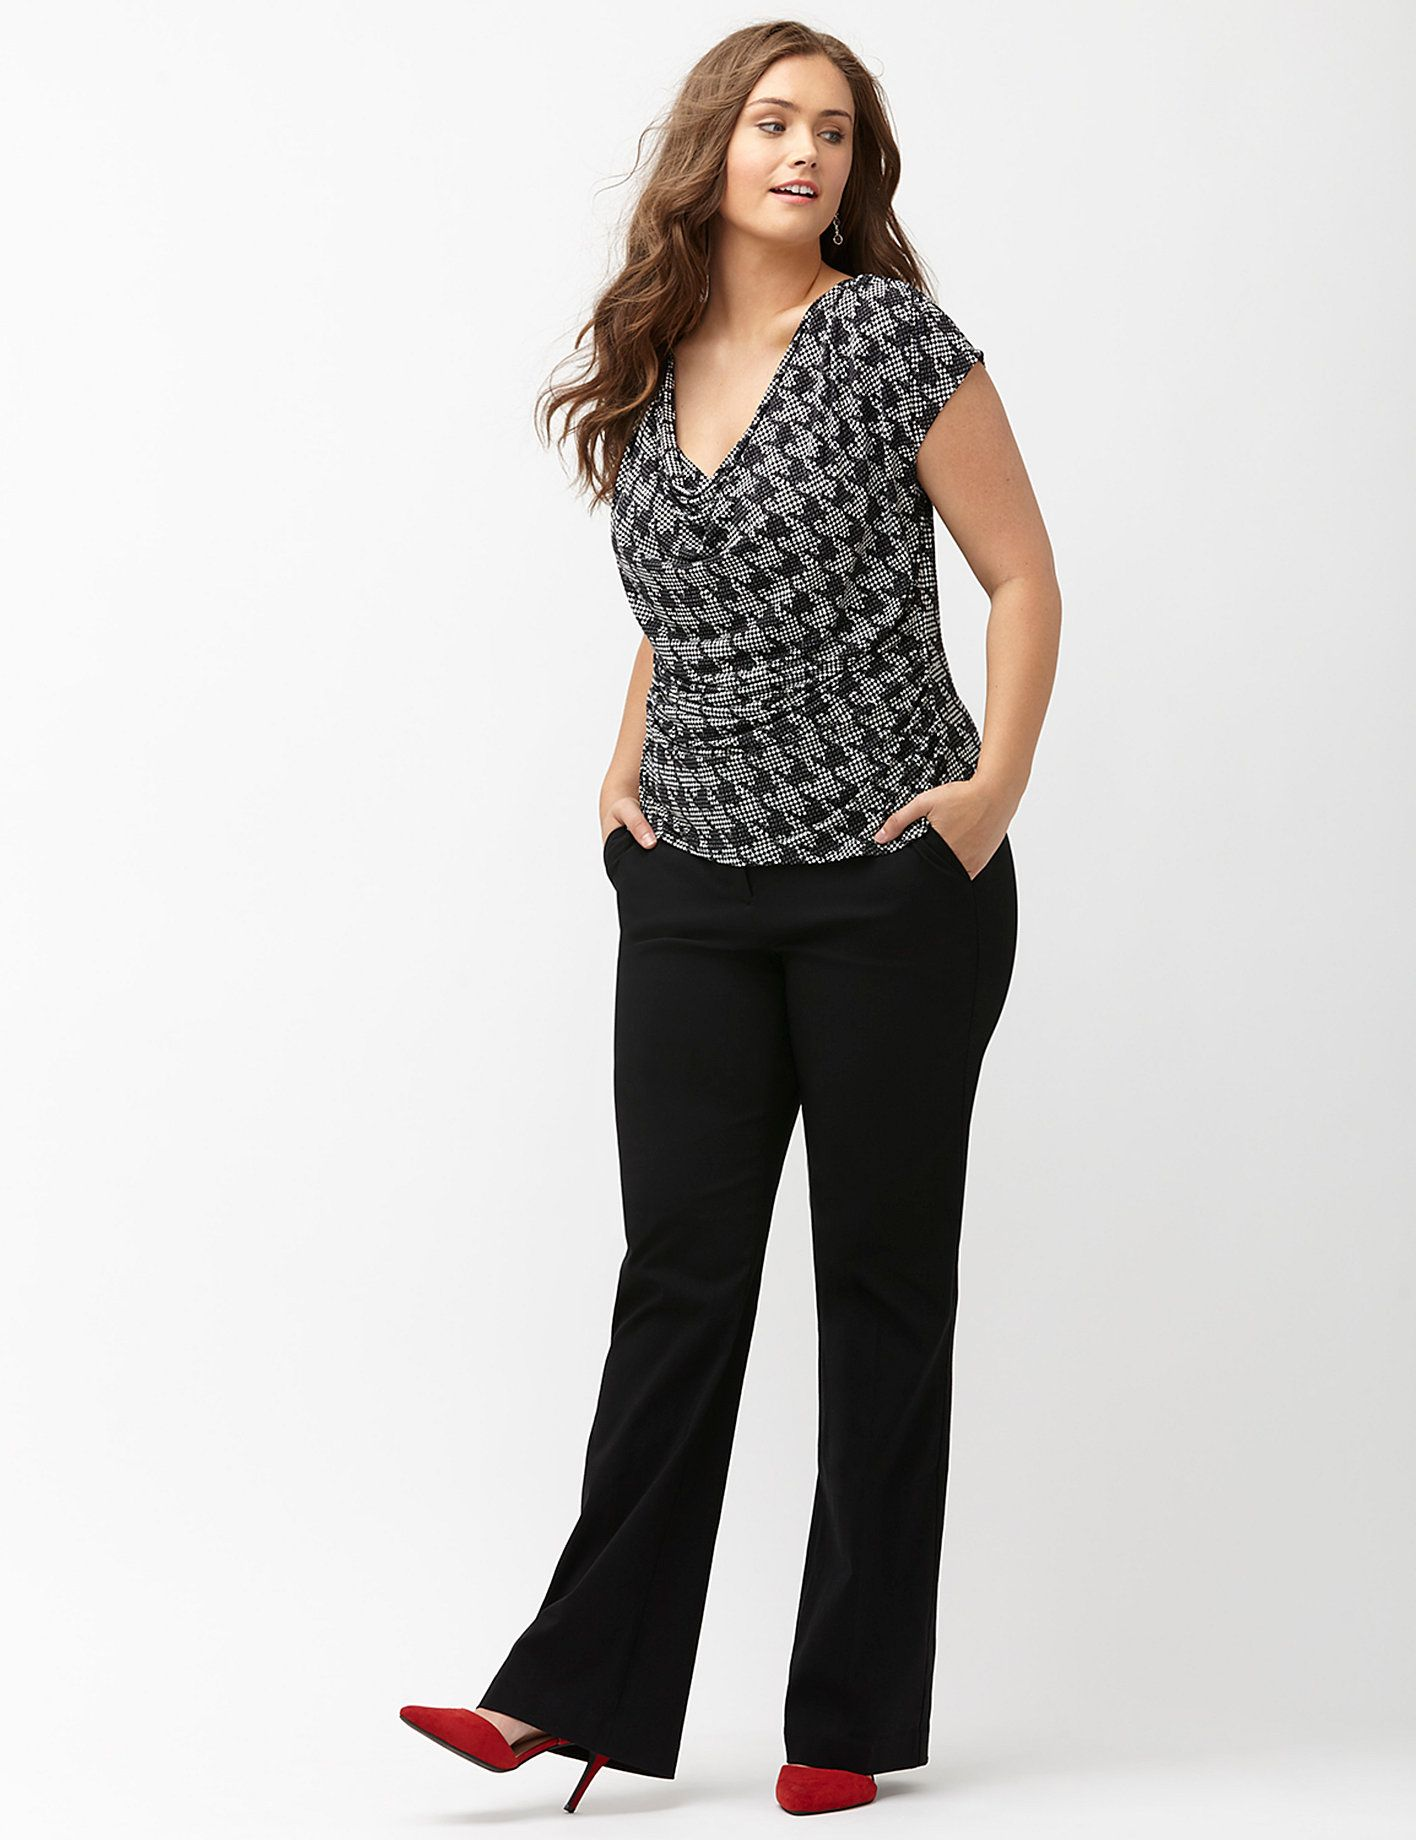 1456ffa79996 Plus Size Pant Suits & Suit Separates for Women | Lane Bryant ...